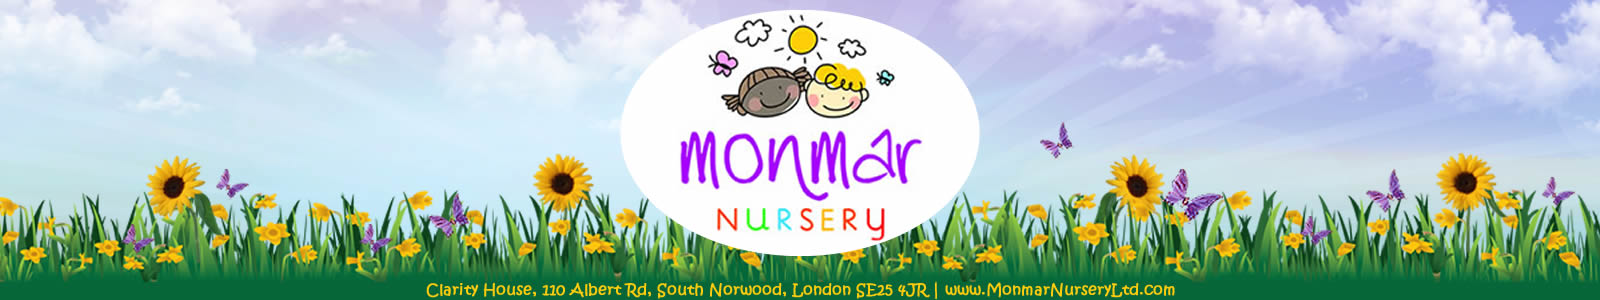 Monmar Nursery Ltd | Pre School Nursery in Norwood, South London for children aged 3 months to 5 years